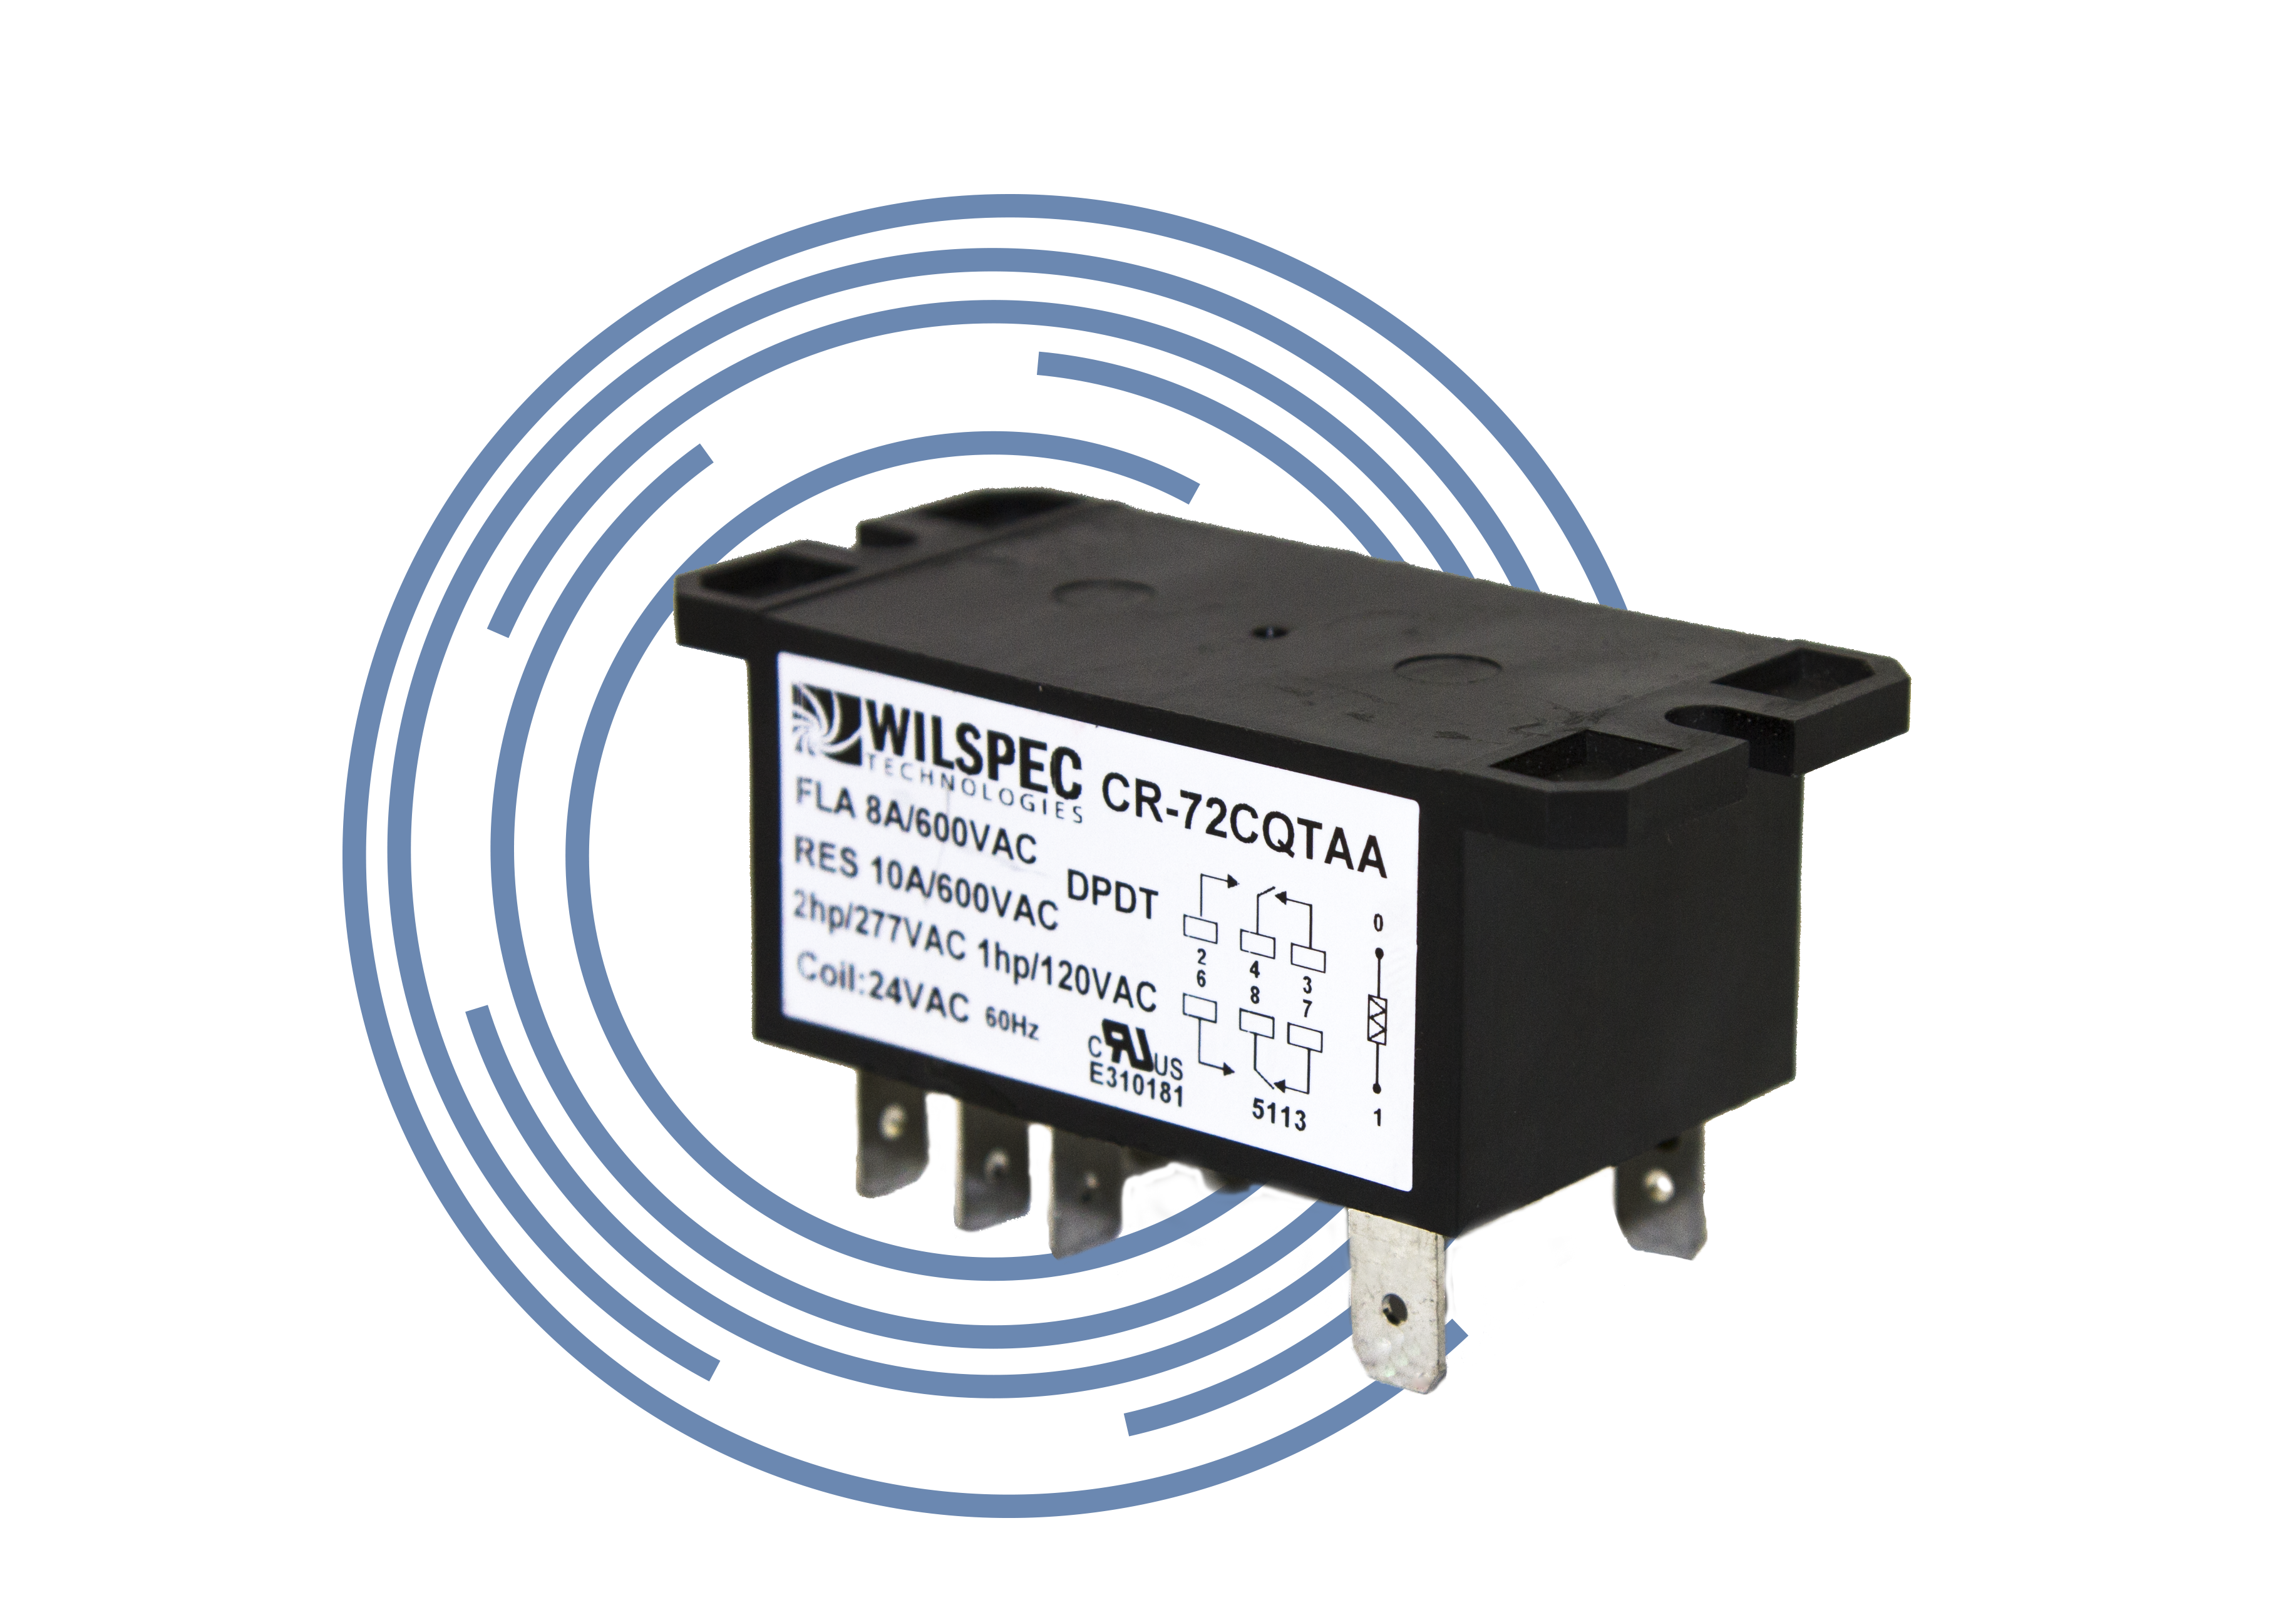 Relays Wilspec Electrical Relay For Dummies Charger Series